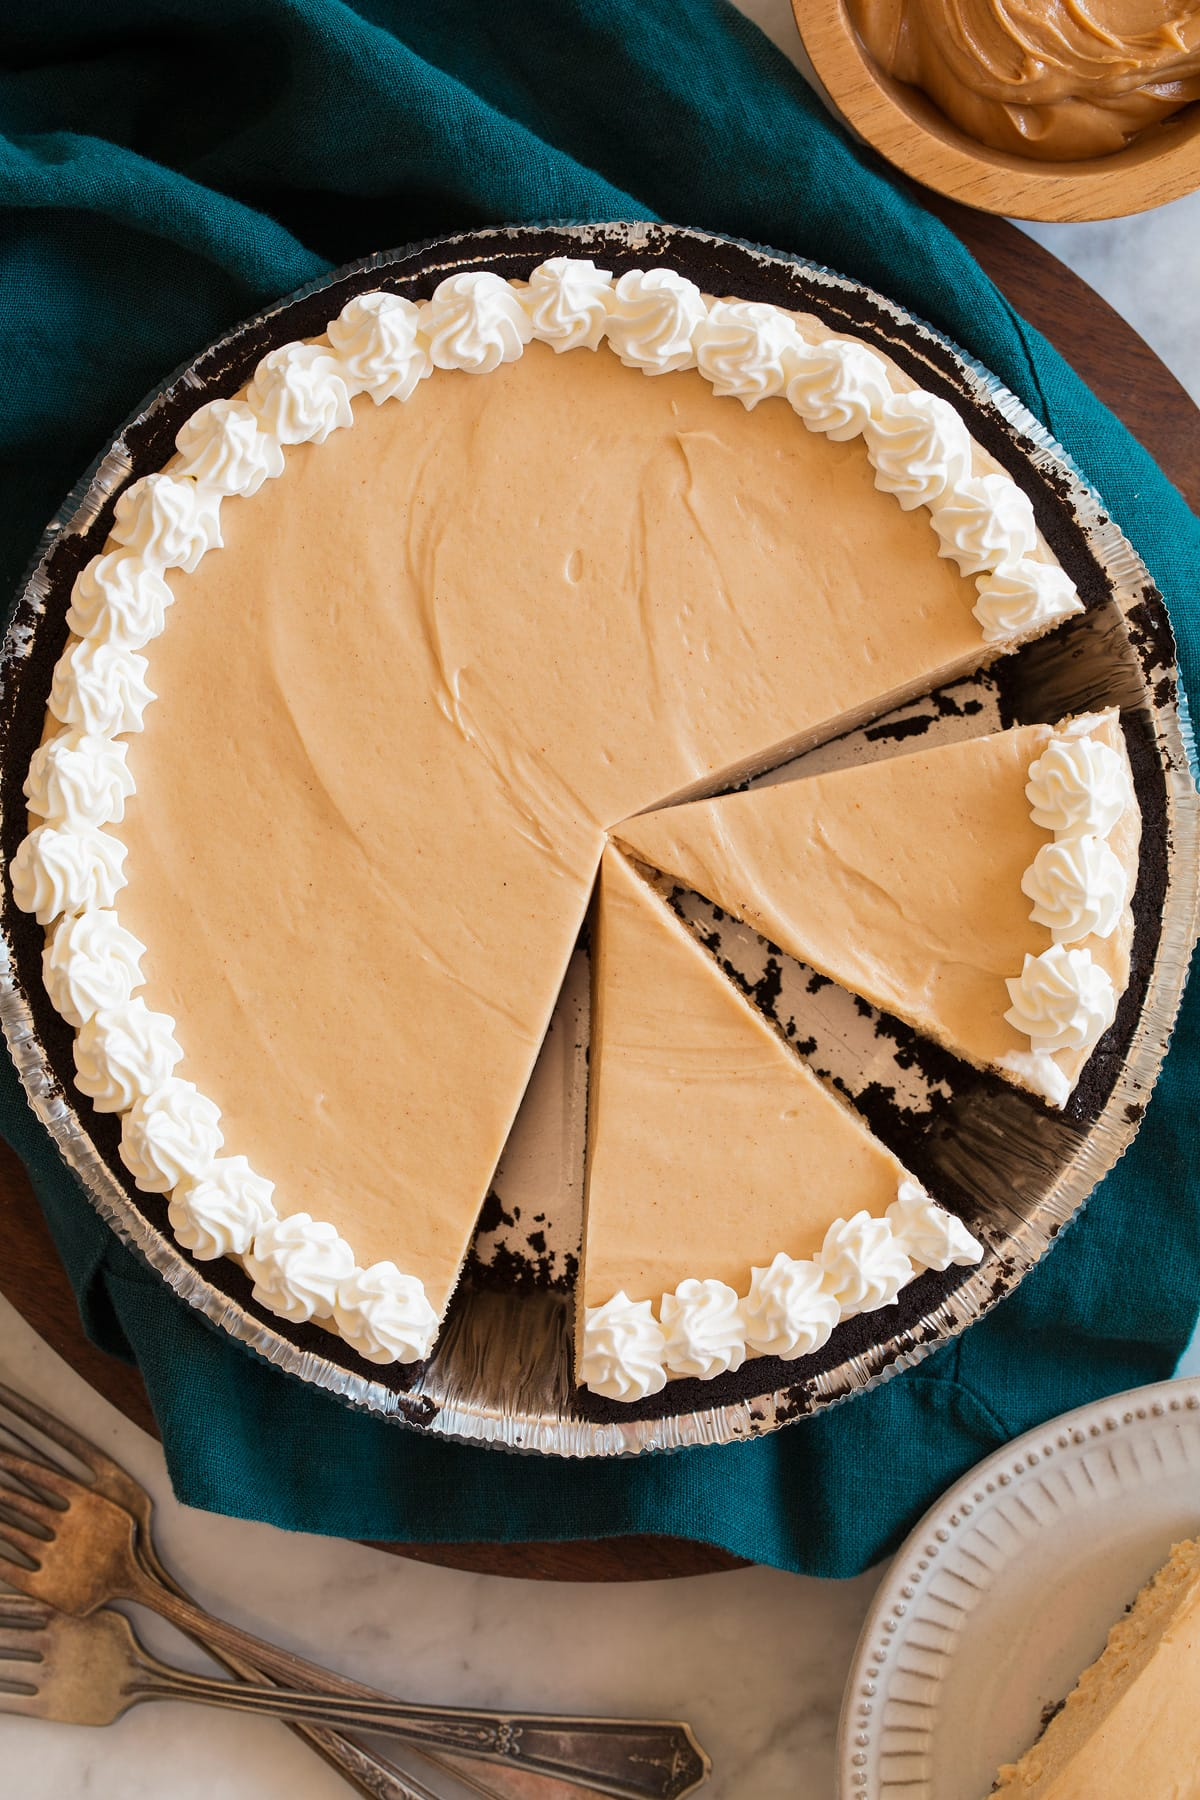 Overhead image of peanut butter pie with a few slices cut.